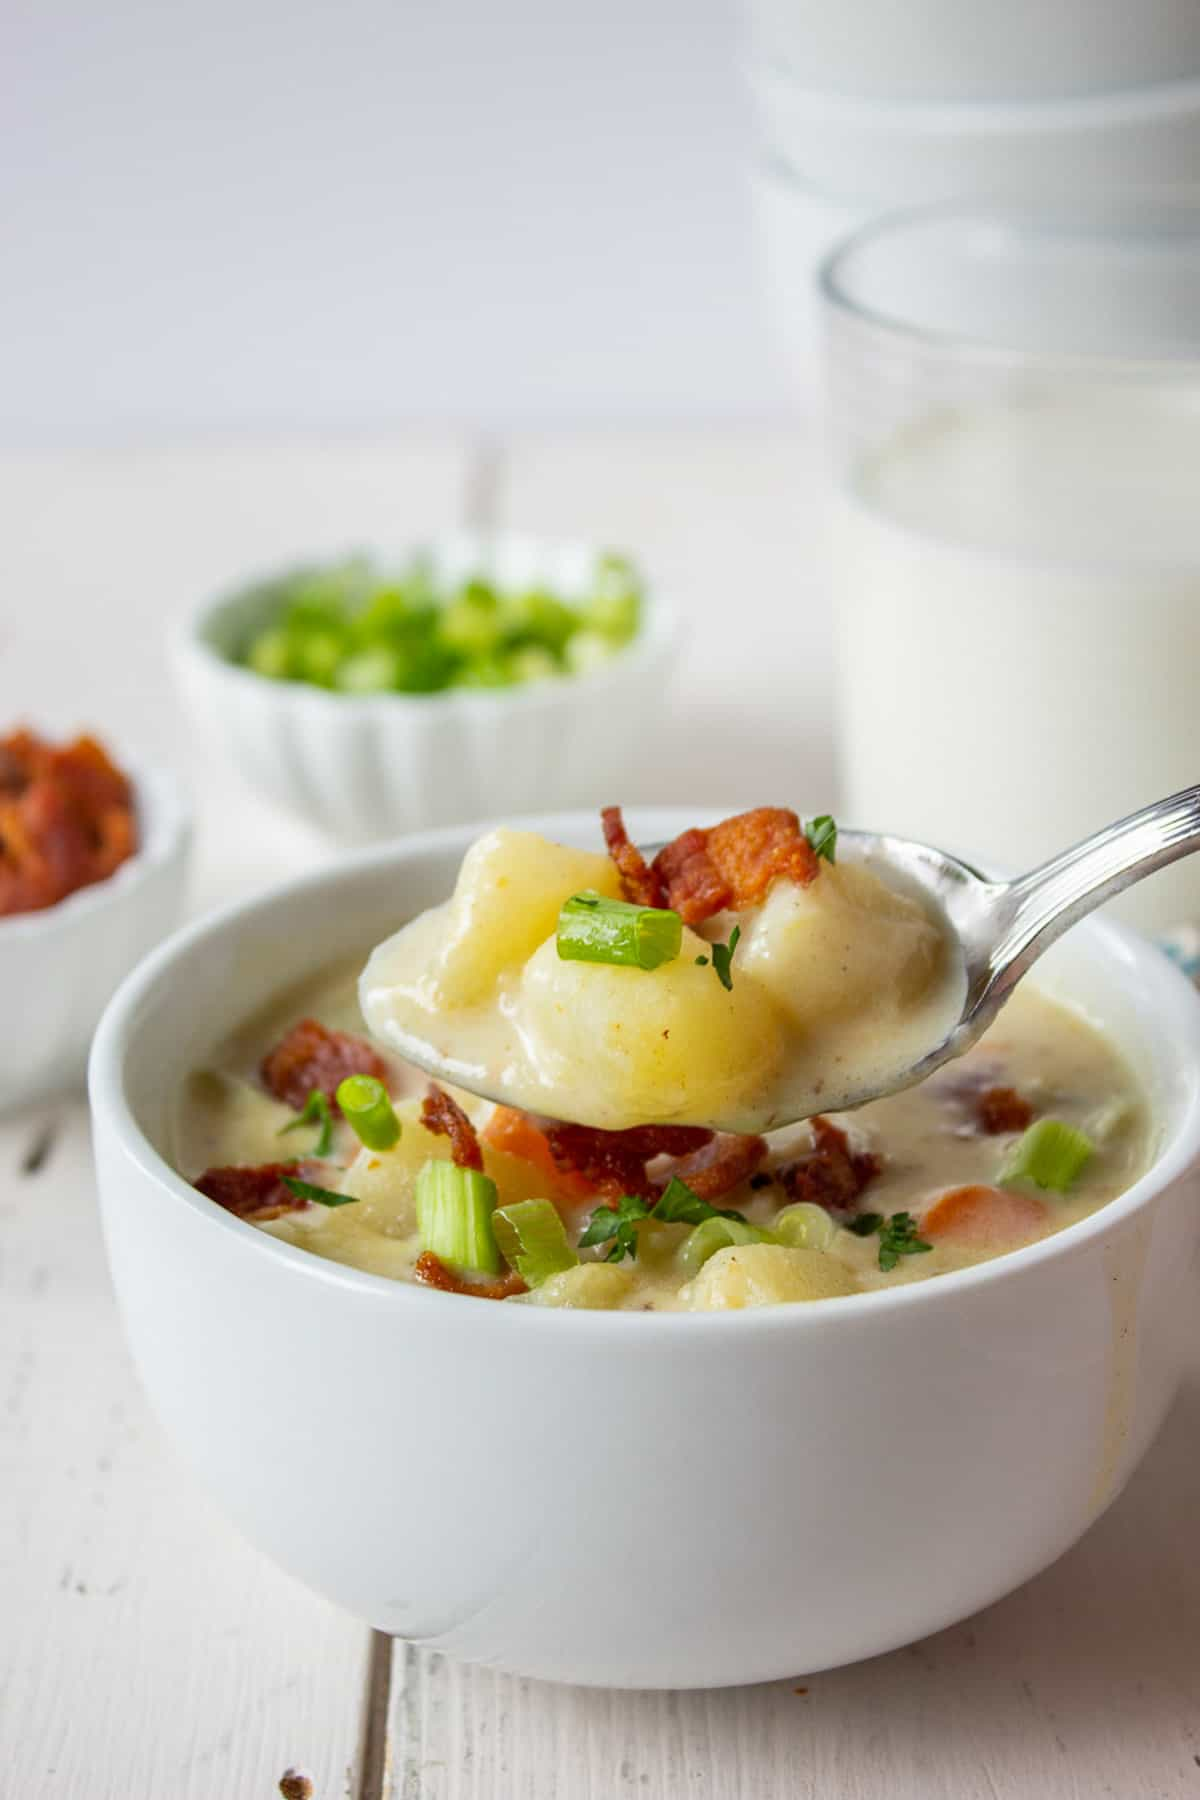 A spoonful of potato soup over a bowl filled with soup.